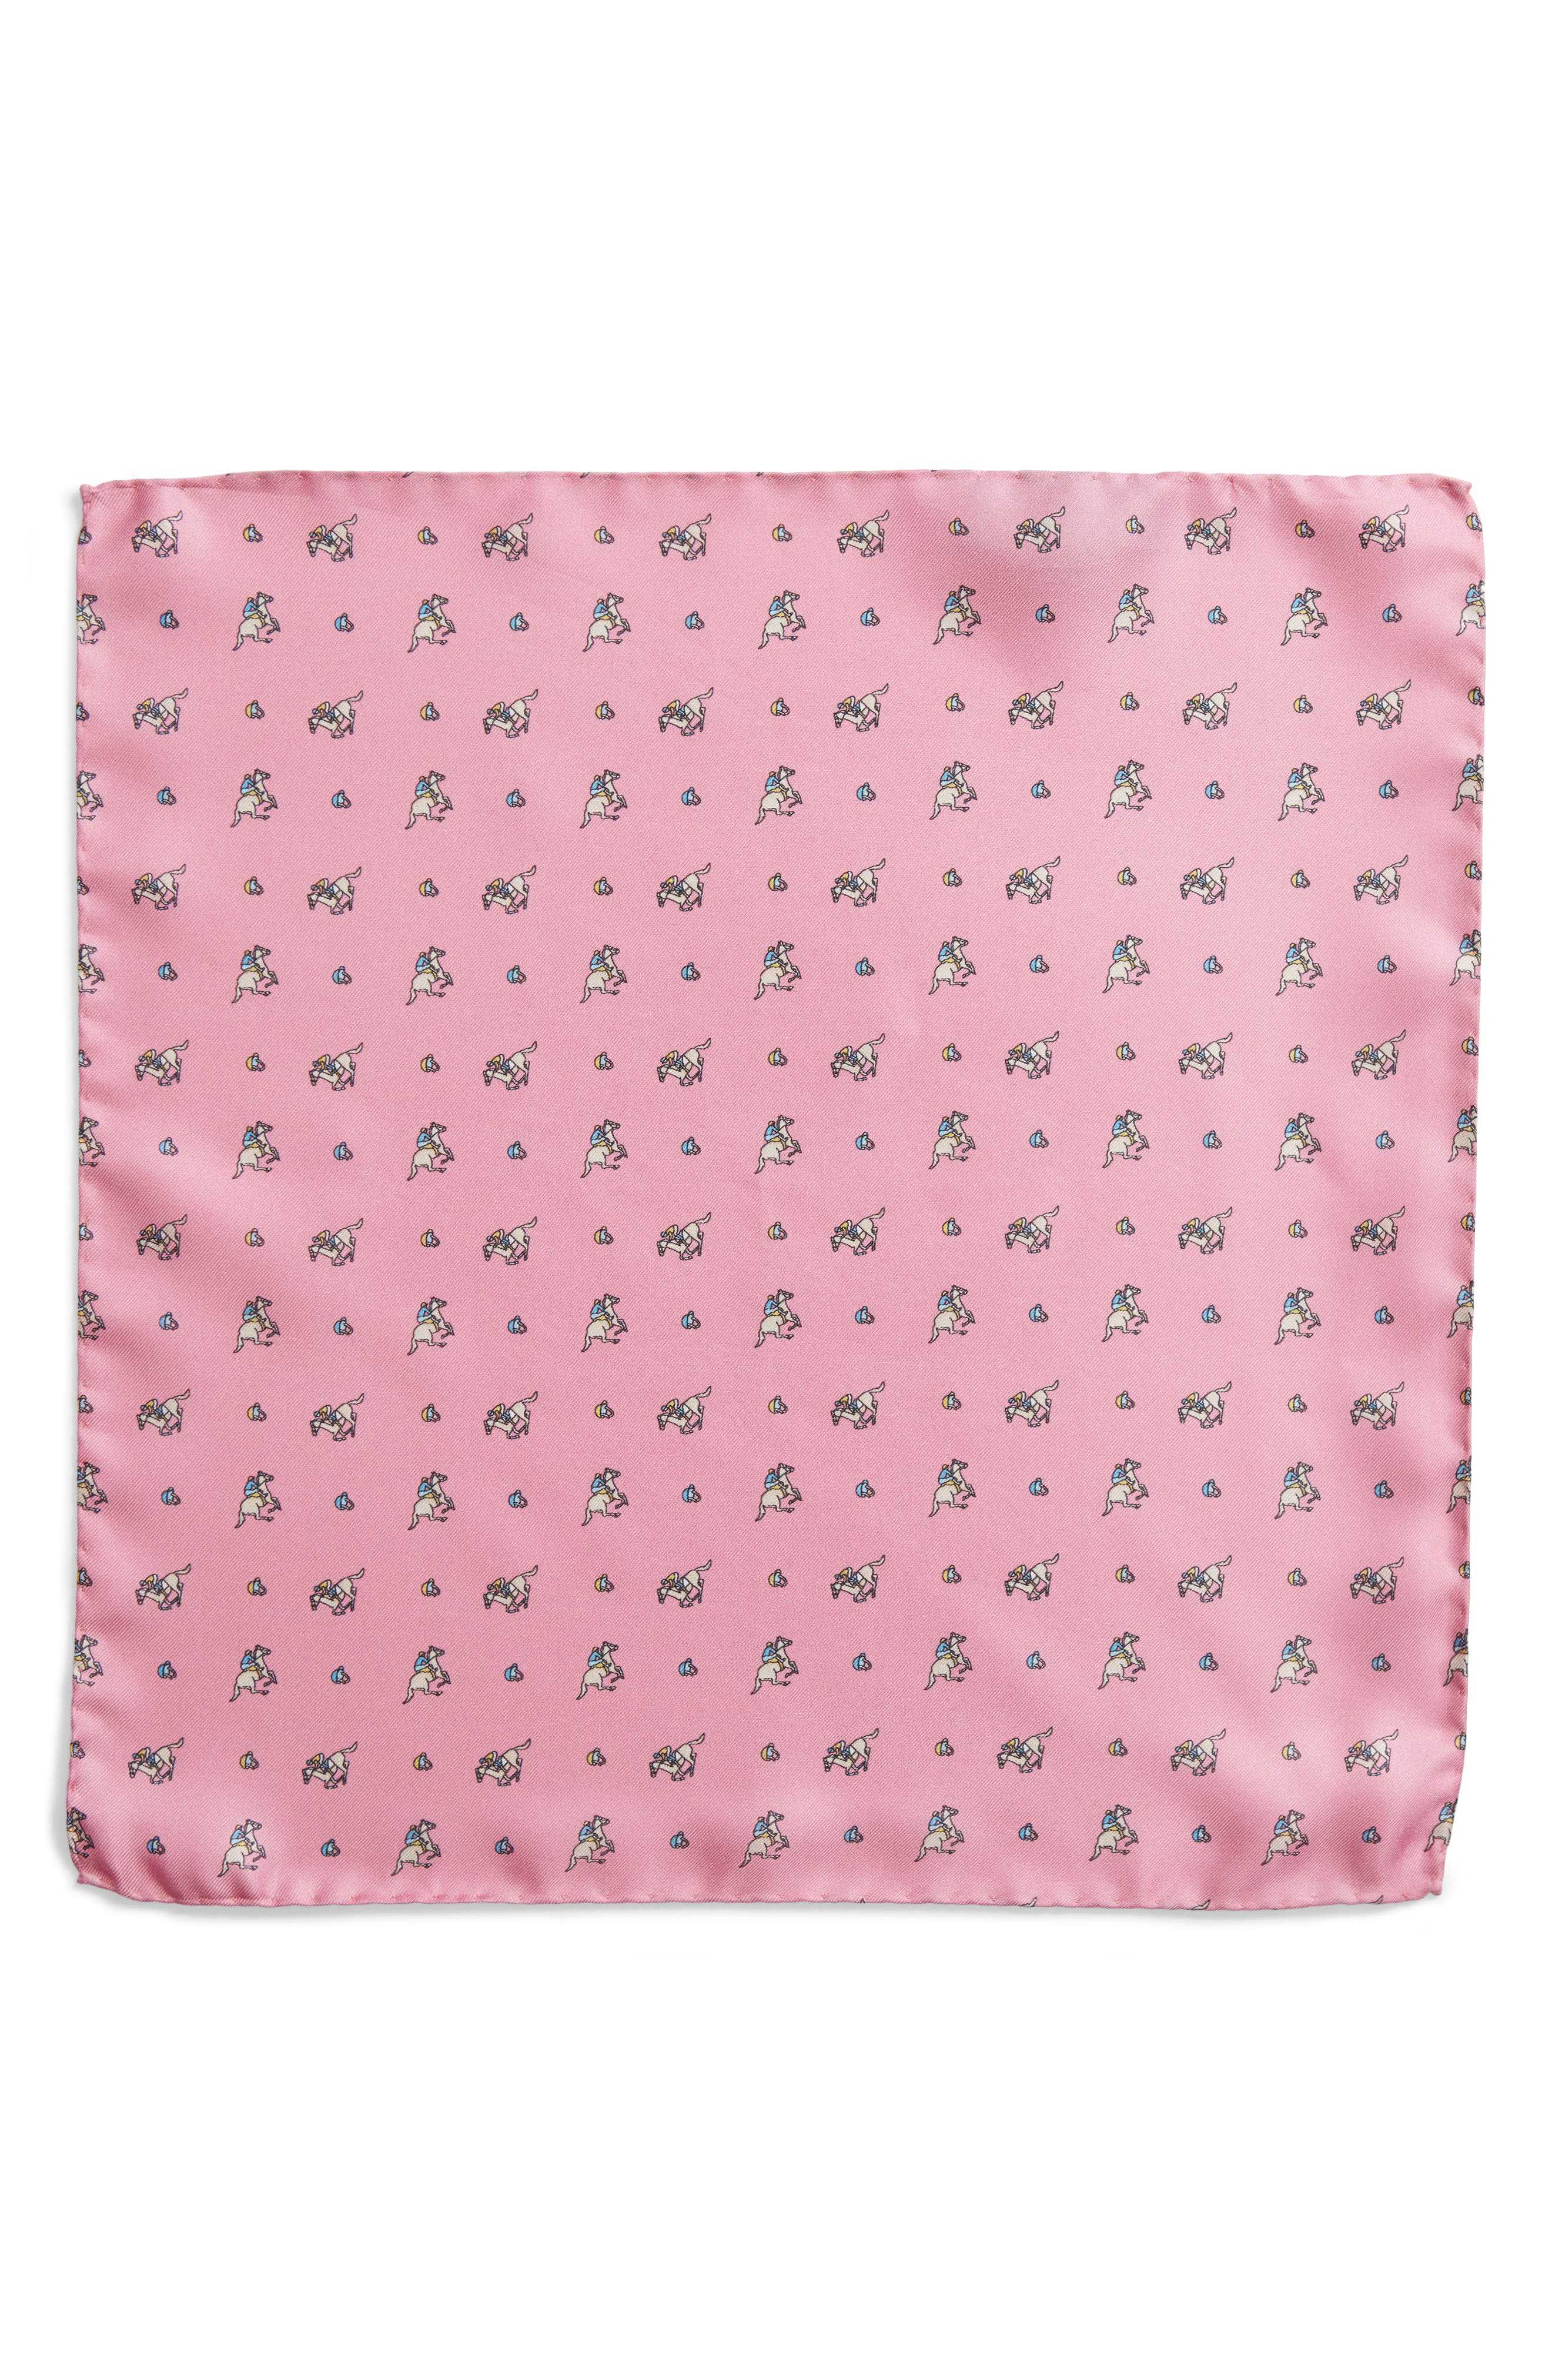 Riding Derby Silk Pocket Square,                             Alternate thumbnail 2, color,                             Pink